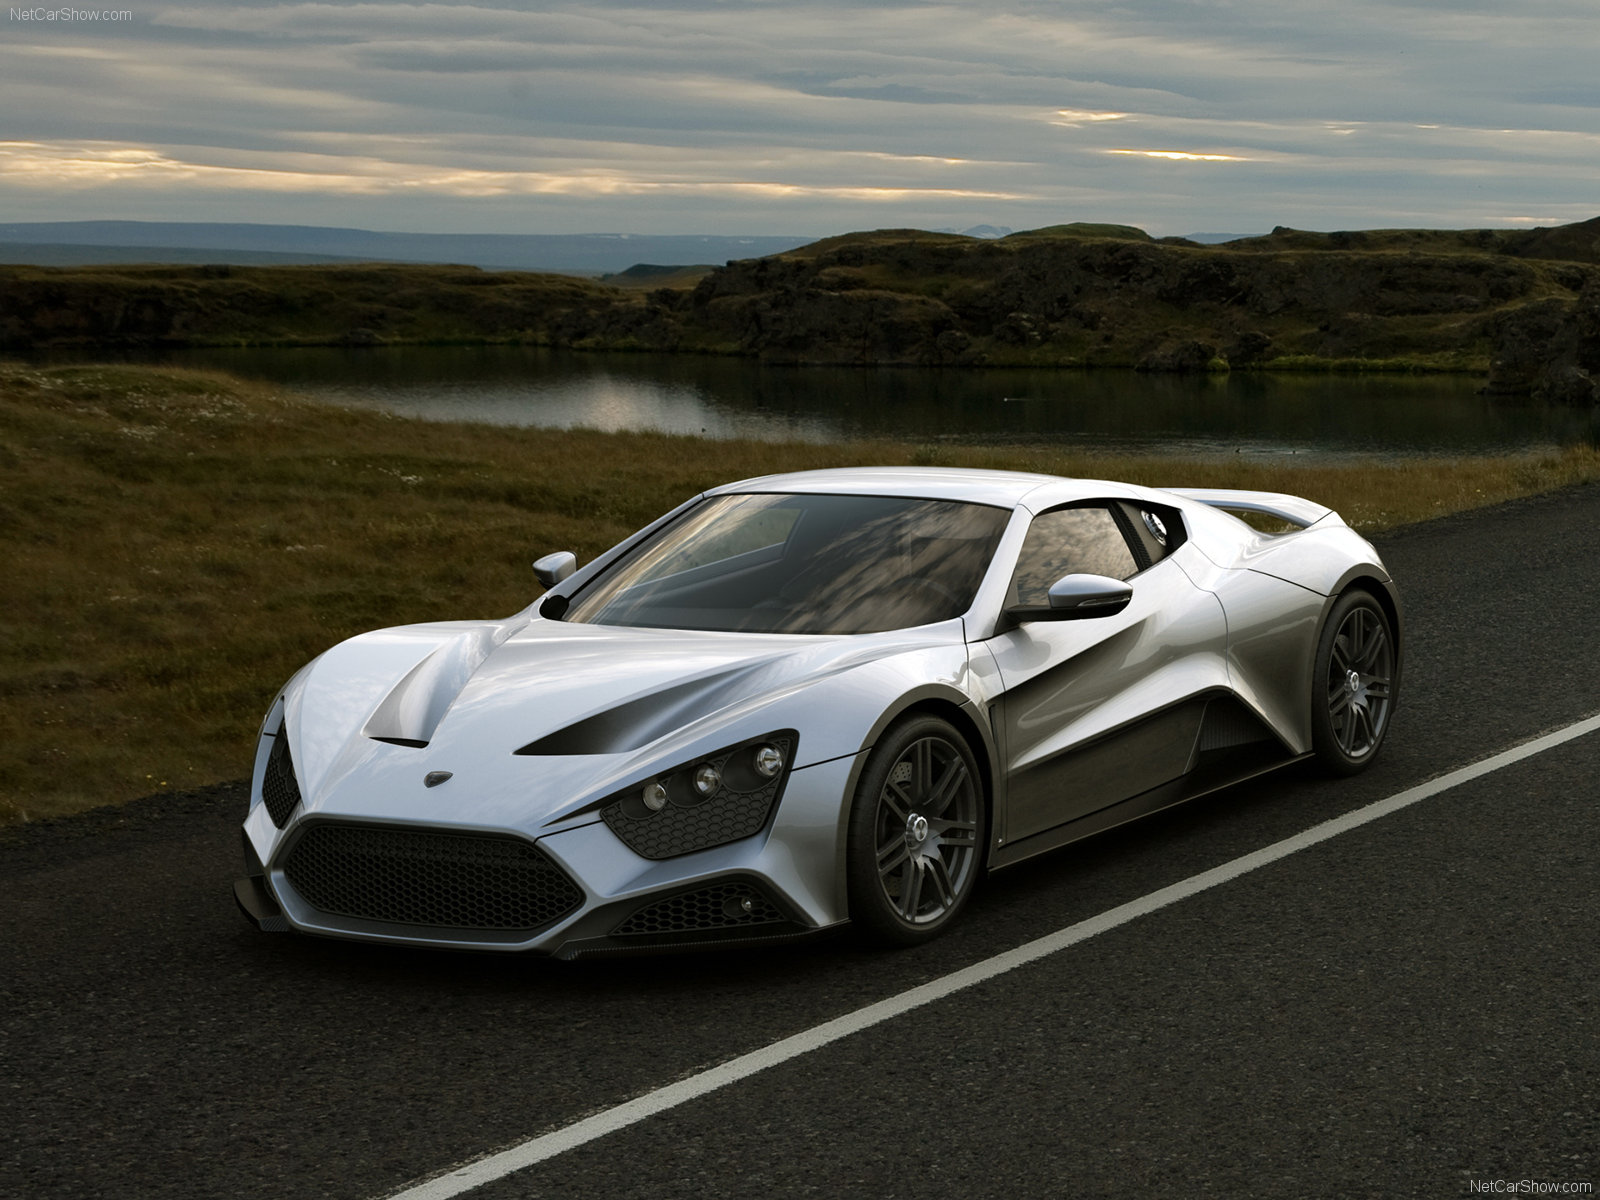 Zenvo st1 car hd wallpapers top best hd wallpapers for for Expensive wallpaper companies